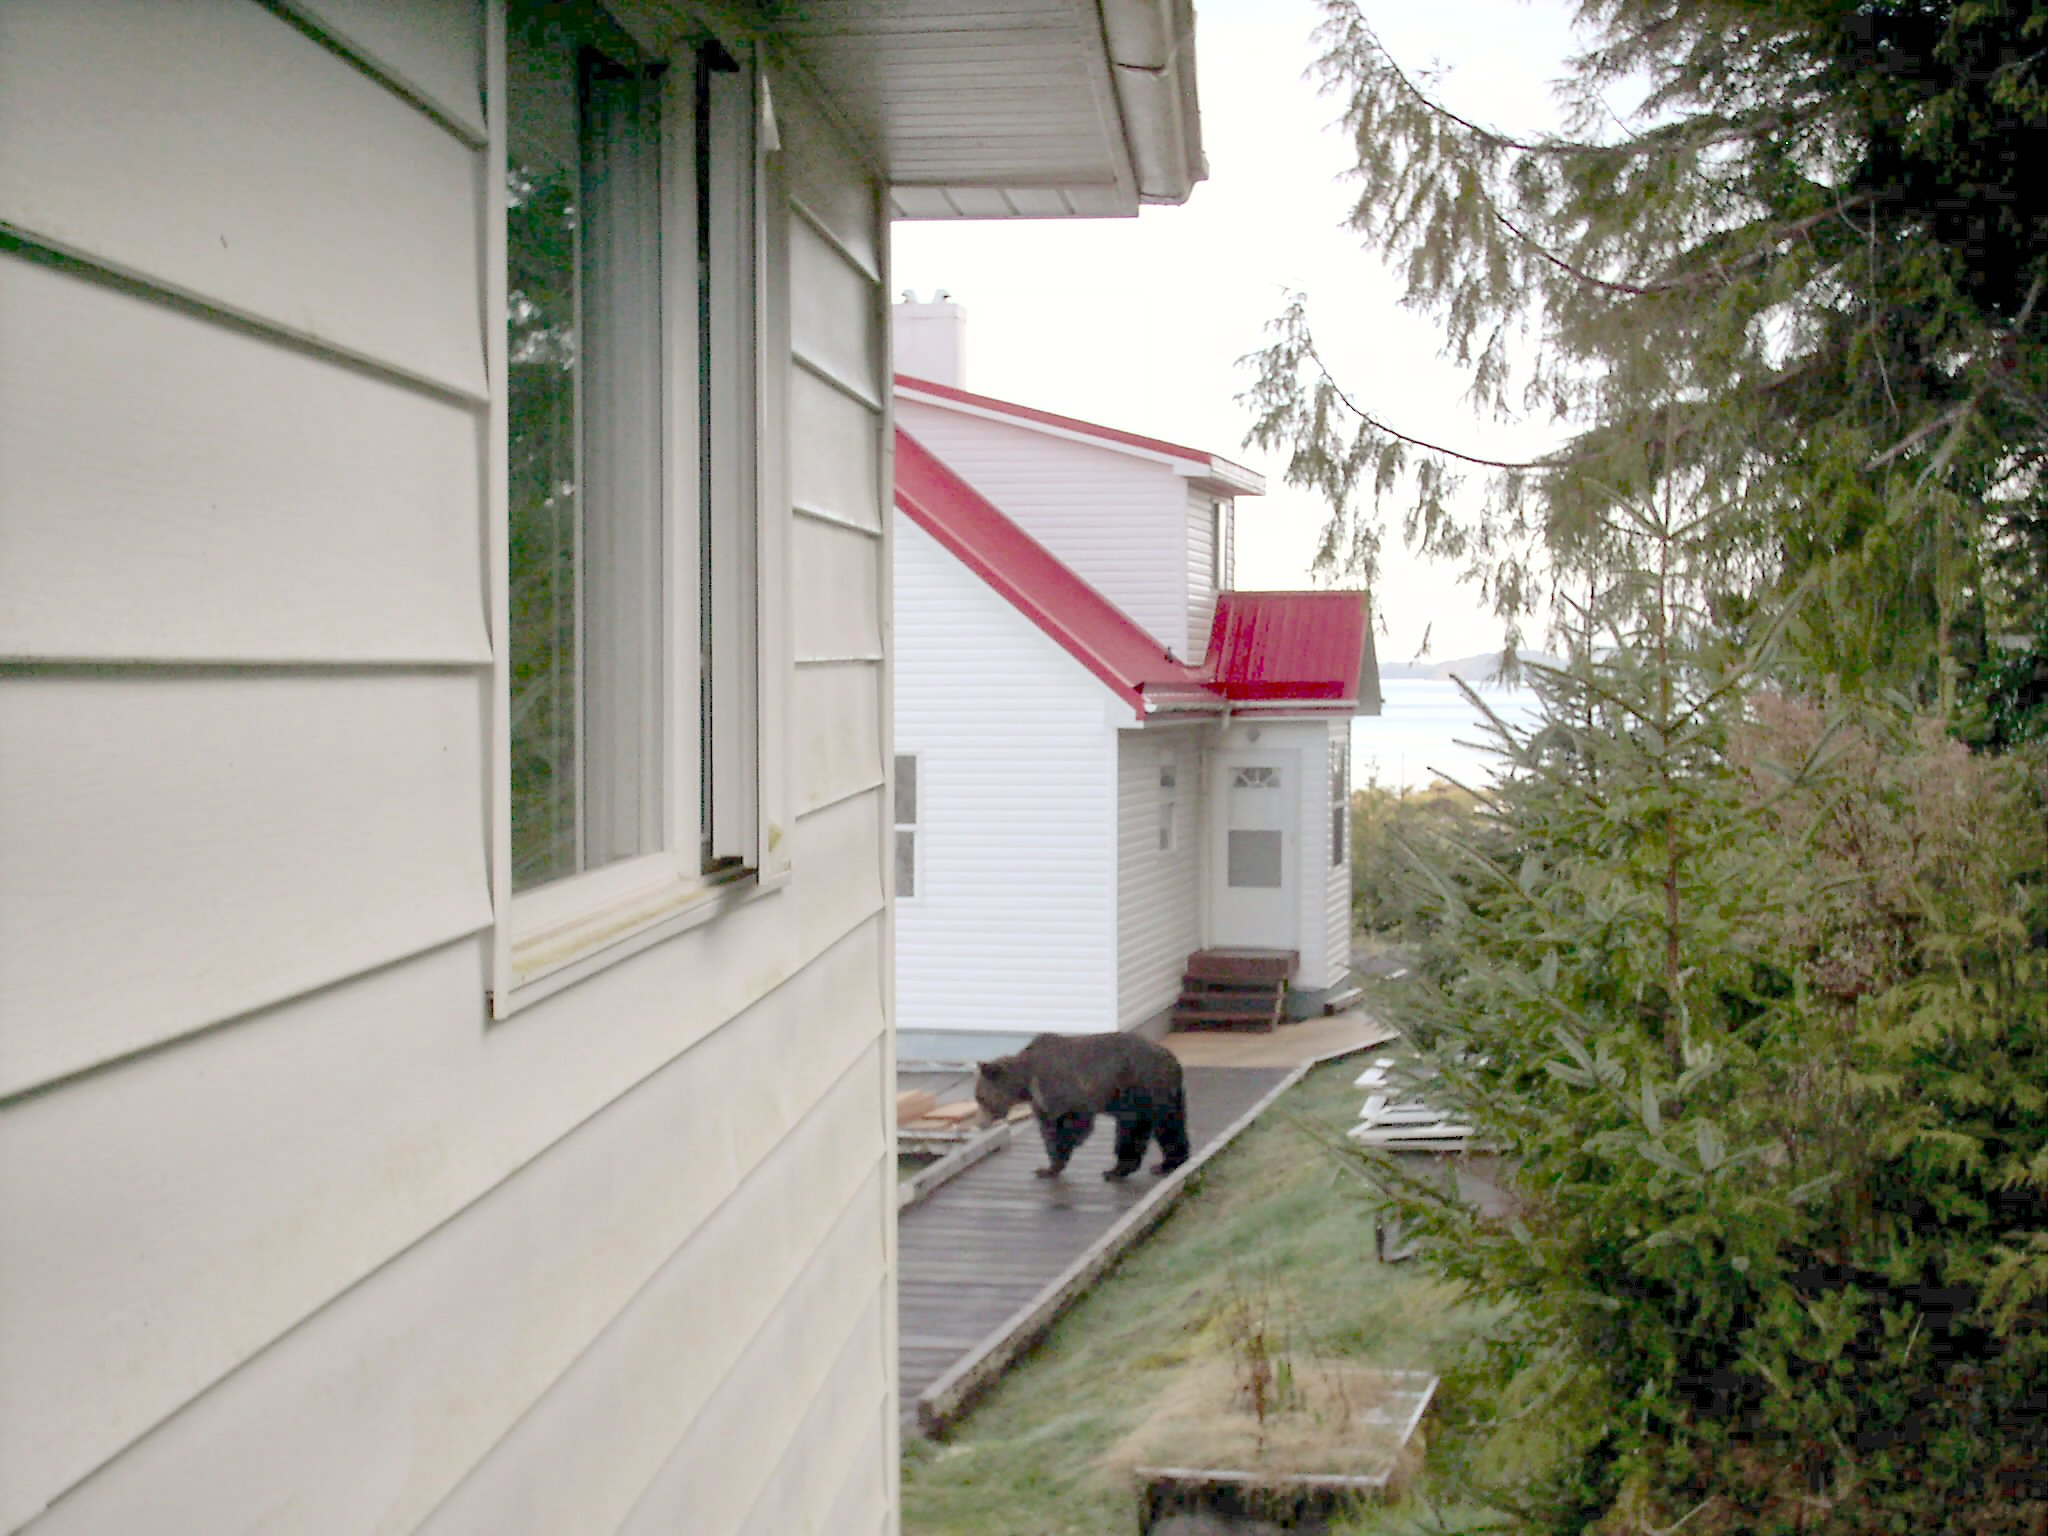 The Bear right between the houses.